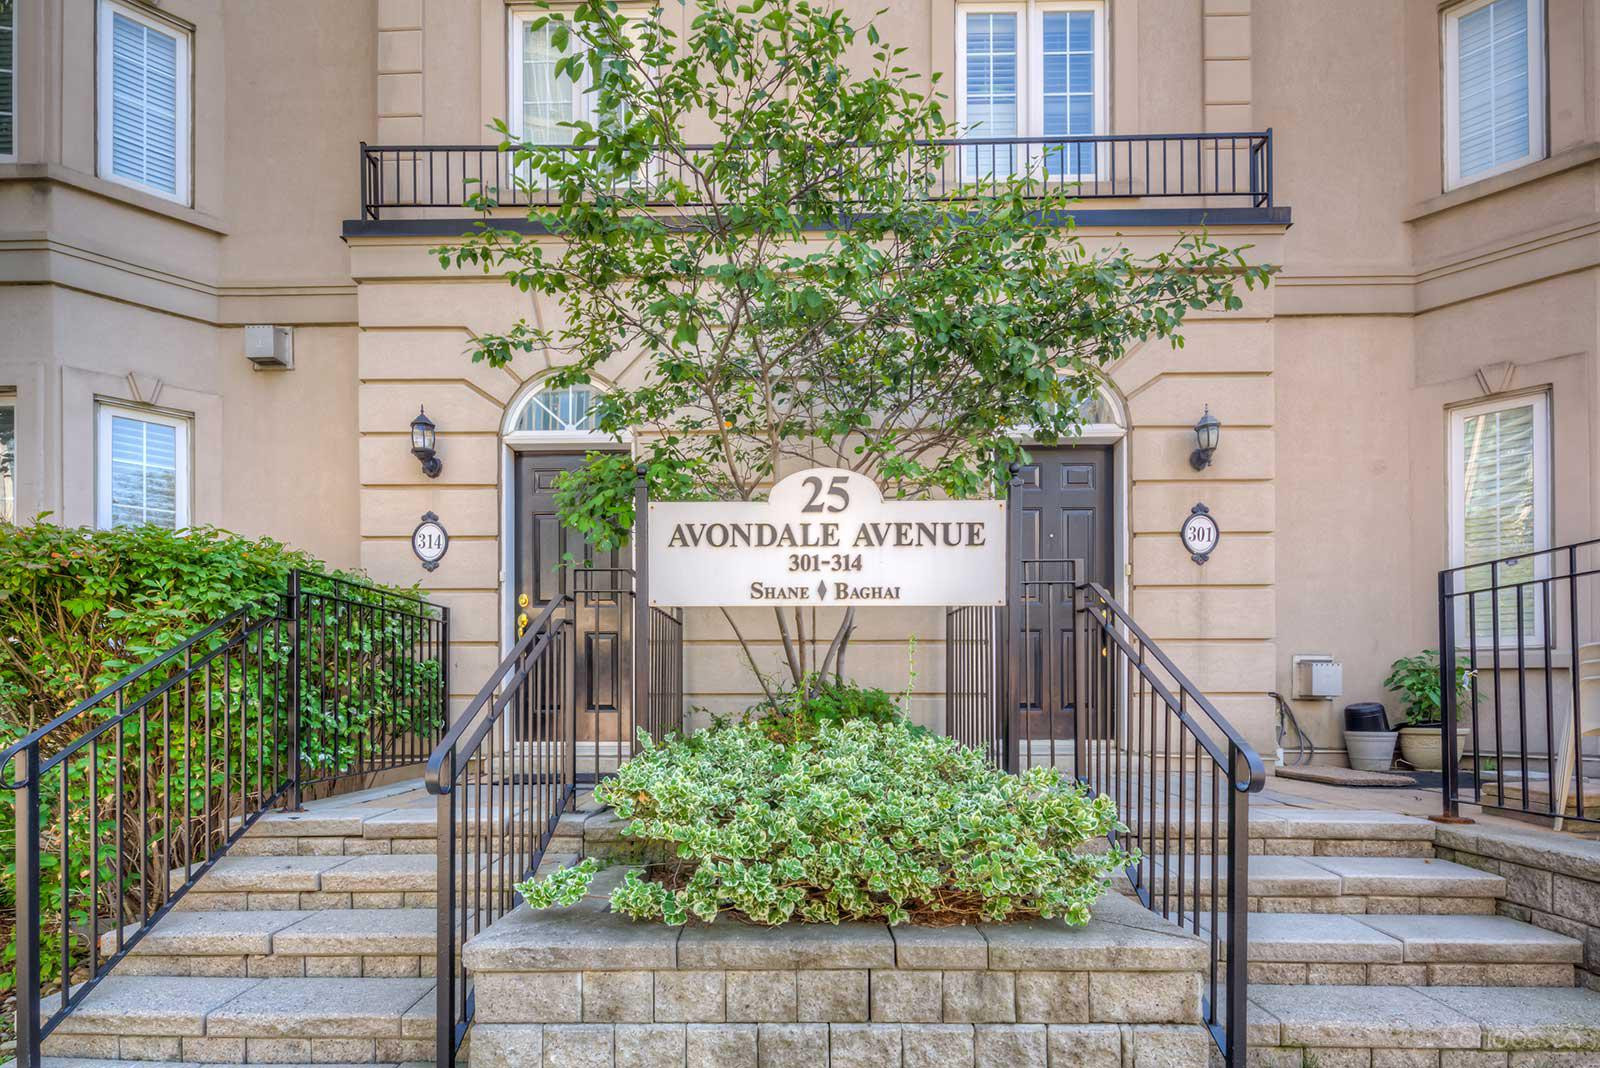 Carriage Homes of Avondale Ⅱ at 25 Avondale Ave, Toronto 1